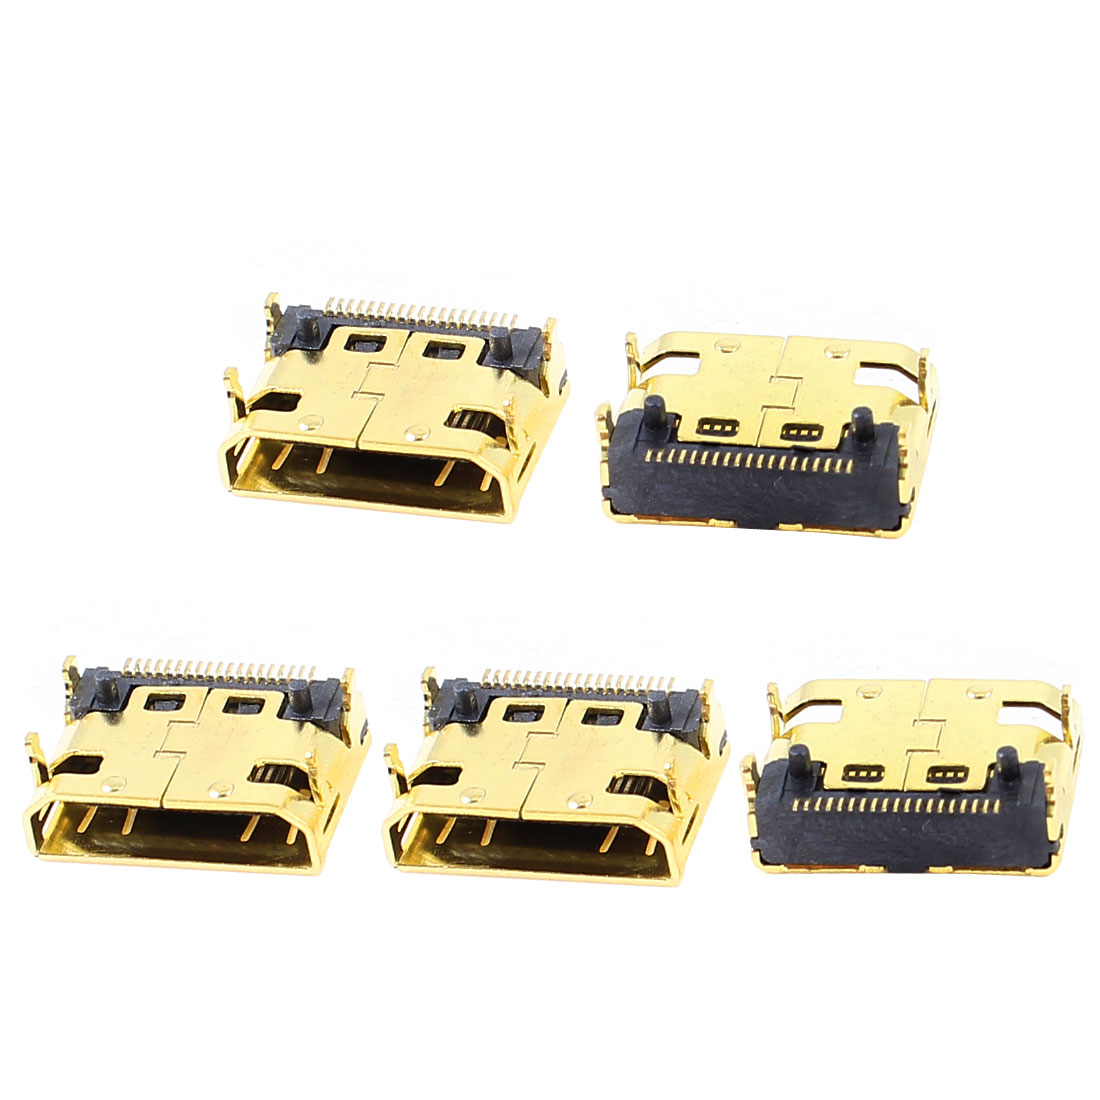 Audio Signal Mini HDMI 19 Pins Female Connector Socket 5 Pcs